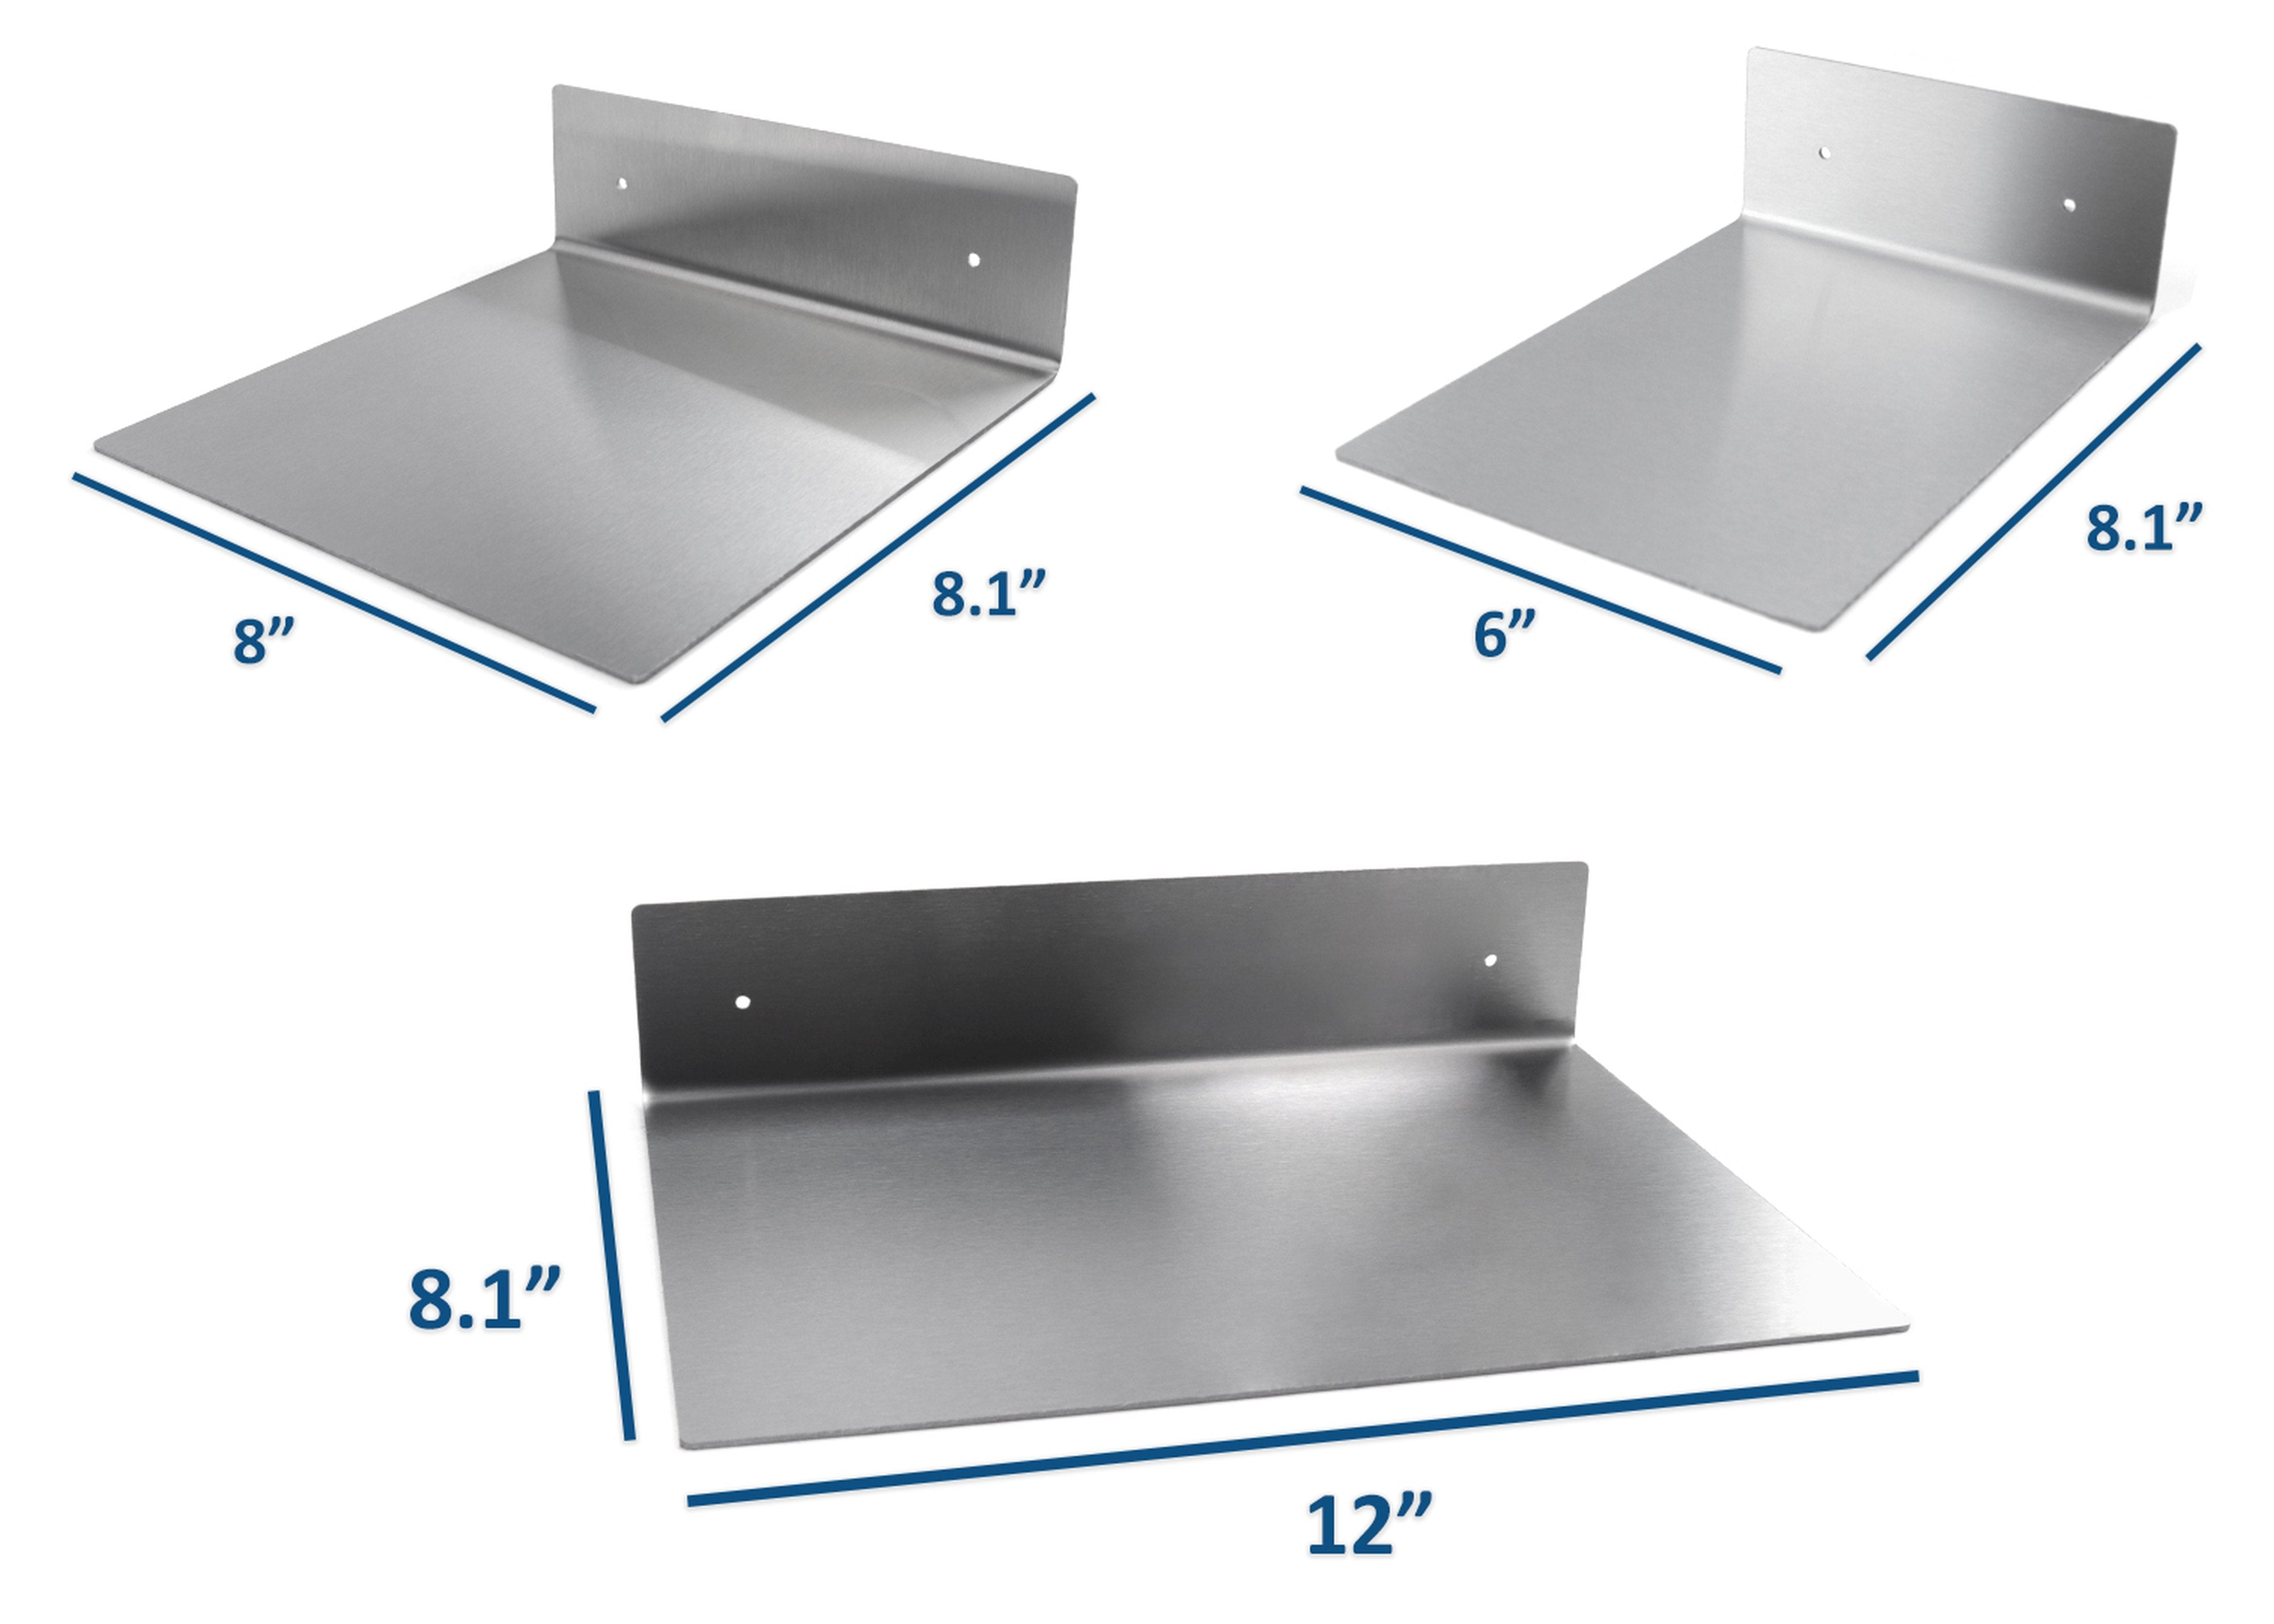 Modern Hanging Brushed Stainless Steel Floating Wall Shelf Decor Durable Polished Solid Metal for Home with Mounting Hardware Complete Set of 3